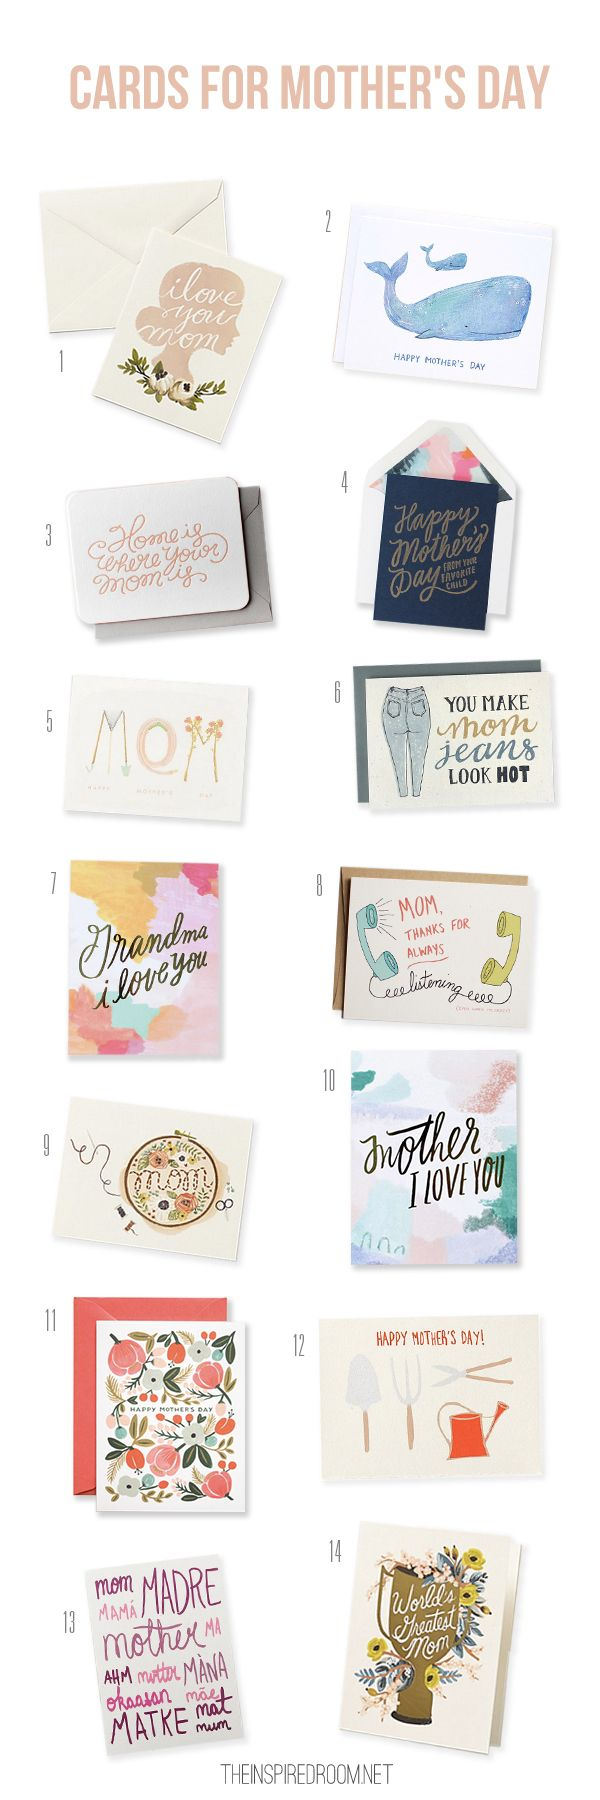 14 Cute Mother's Day Cards (sources on the blog!) #mothersday #cards #gifts